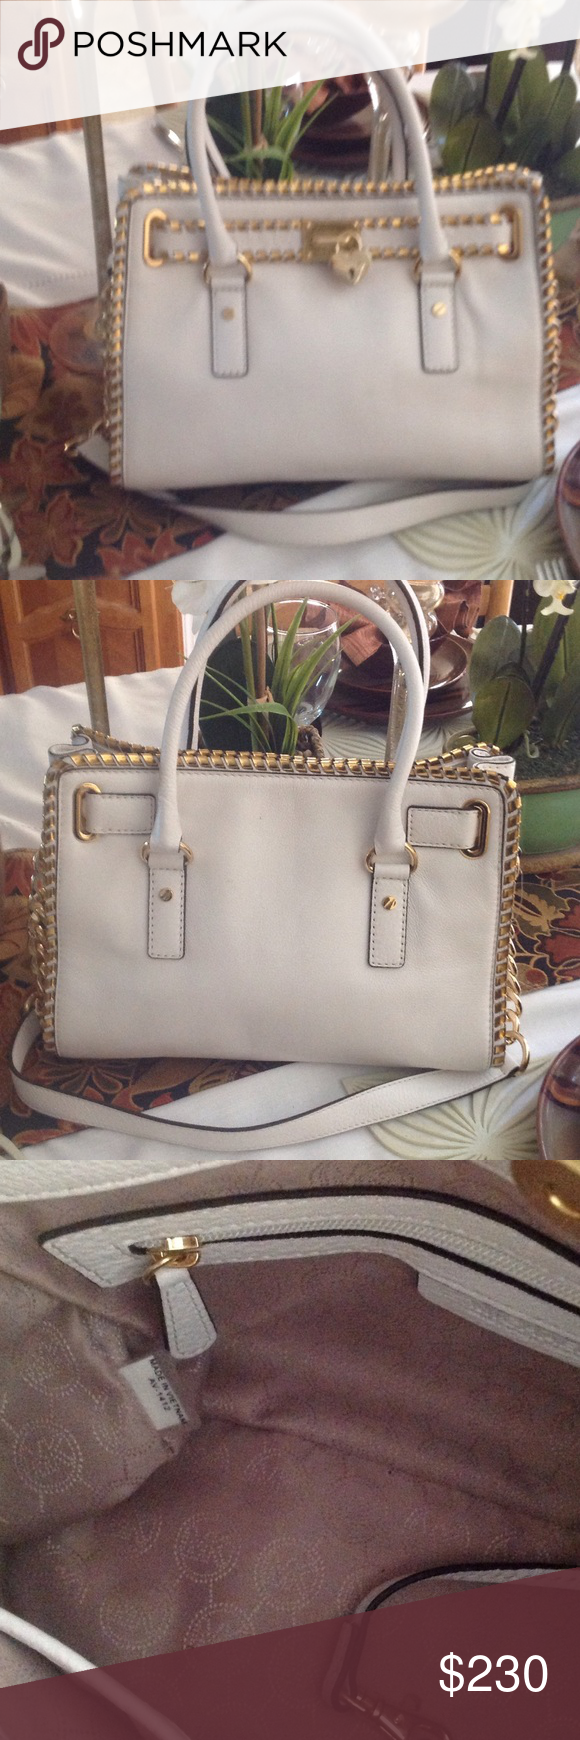 Michael Kors Hamilton shoulder bag  hand bag Michael Kors Hamiltion, new without tag. White with Gold hardware, medium size. Has replaceable lock and key . MSRP$298 Michael Kors Bags Shoulder Bags